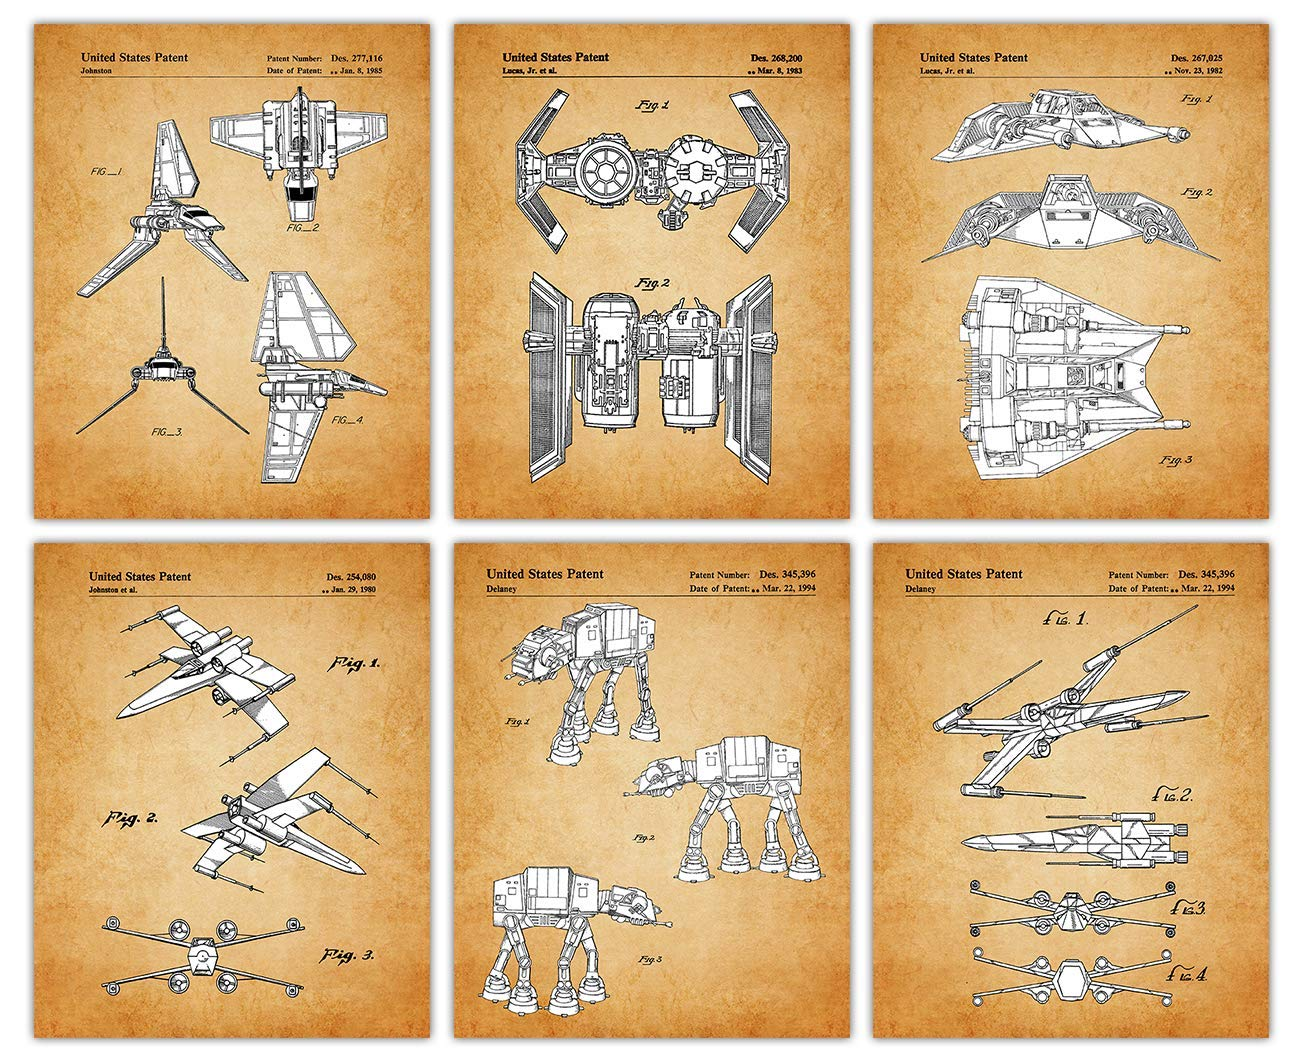 Vintage Star Wars Patent Poster Prints – Set of 6 Unframed 8x10 Photos - Unique Wall Art for Home, Room & Office Decor - Great Gift Idea Under $25 for Men, Women & Movies Fans